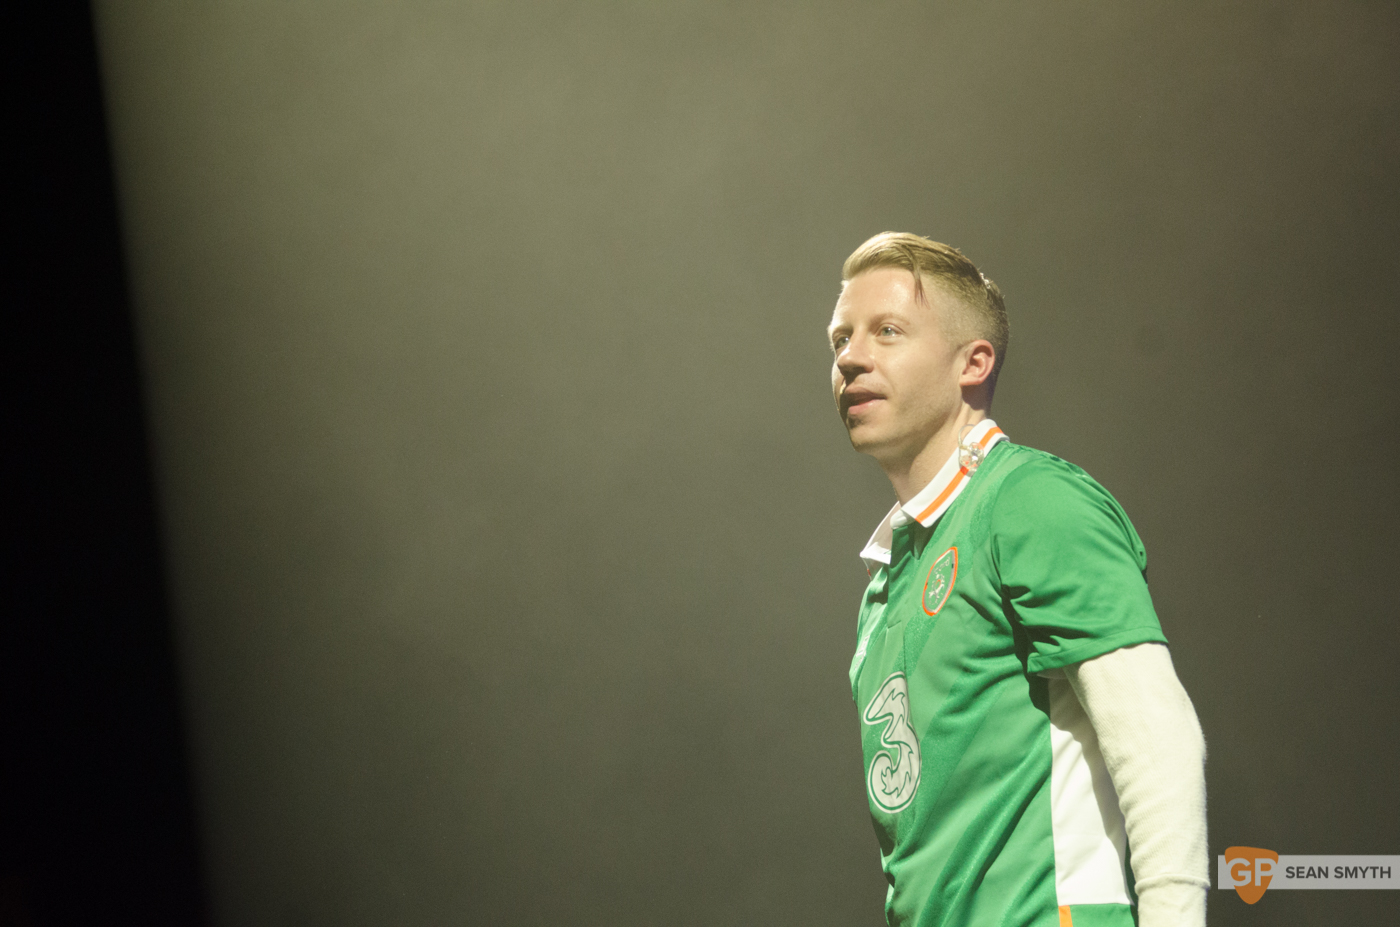 Macklemore & Ryan Lewis at 3Arena by Sean Smyth (15-4-16) (12 of 23)